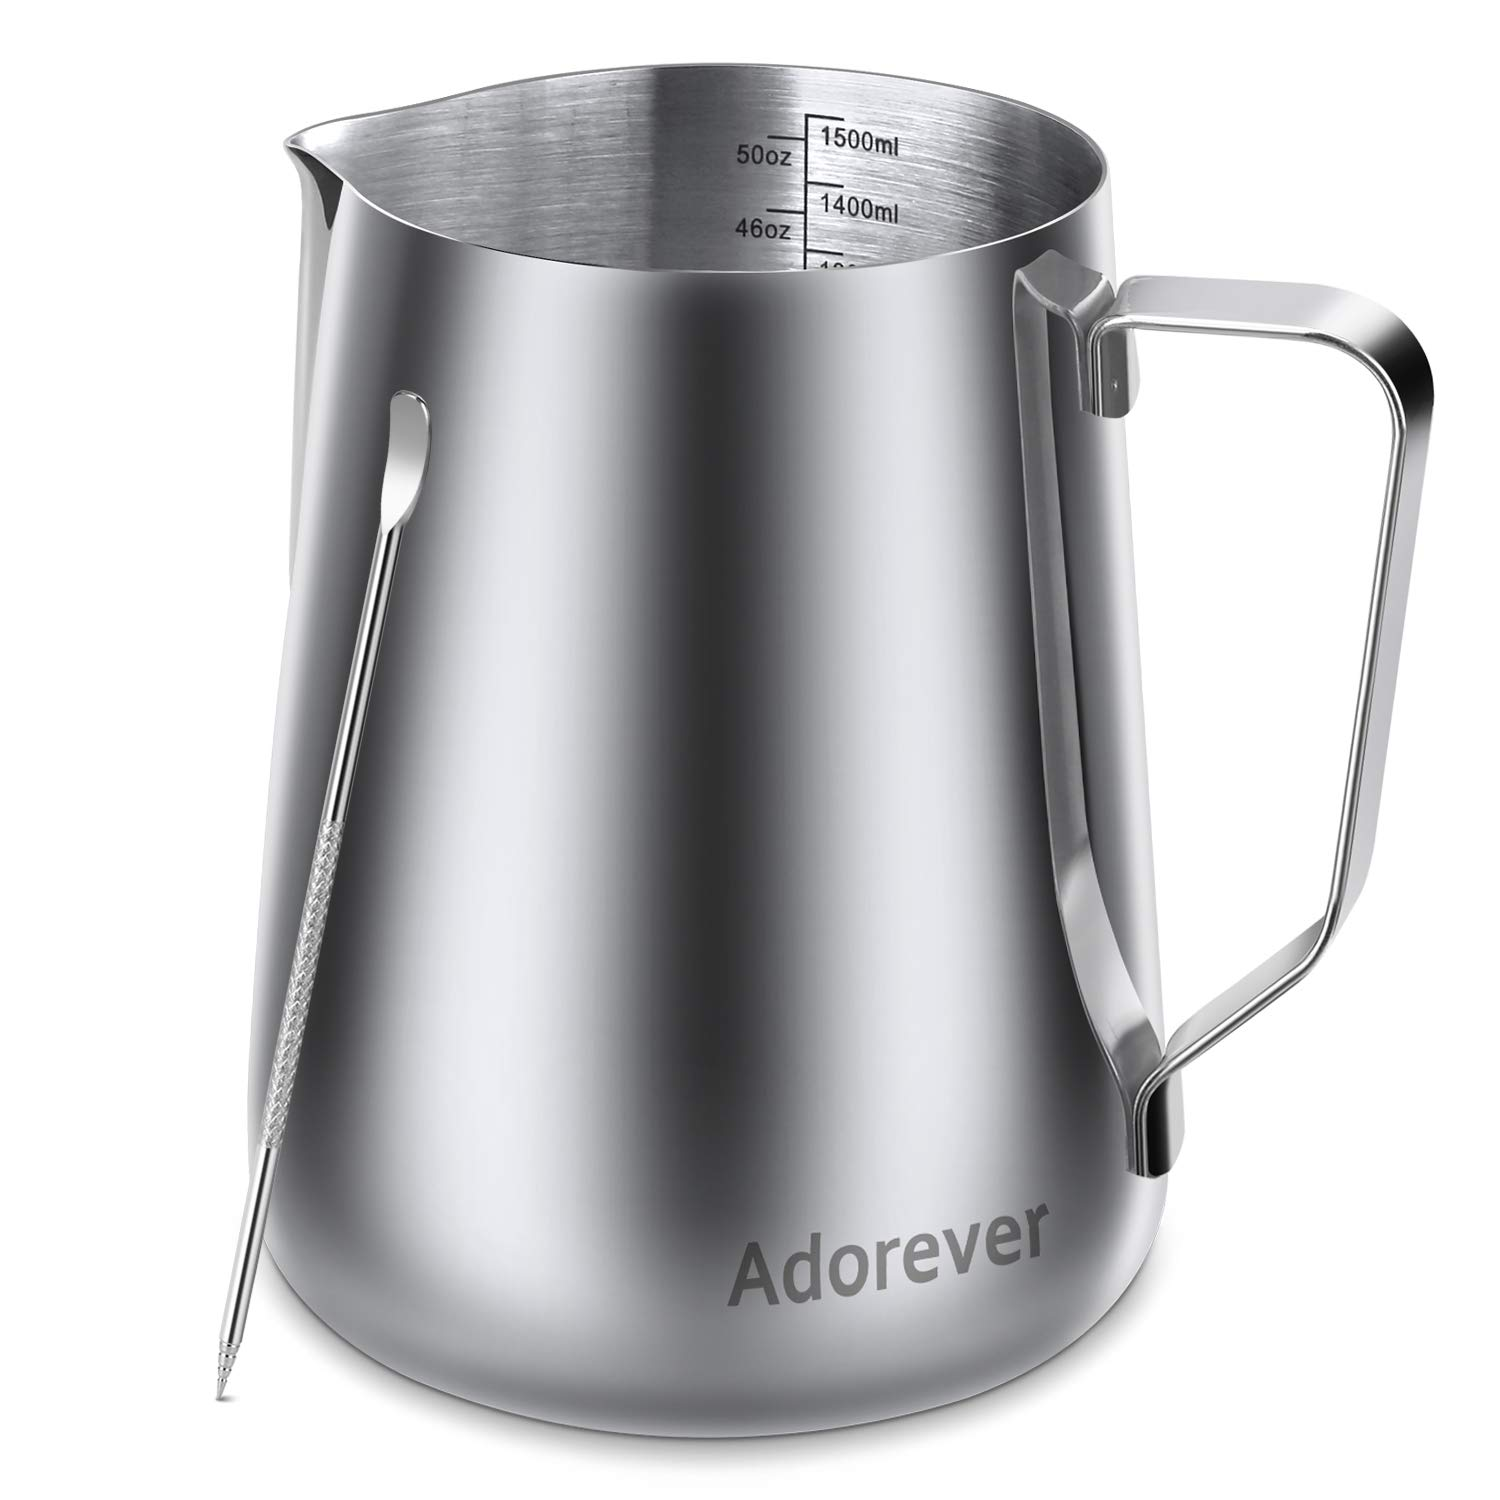 Milk Frothing Pitcher 1500ml/50oz Steaming Pitchers Stainless Steel Milk Coffee Cappuccino Latte Art Barista Steam Pitchers Milk Jug Cup with Decorating Art Pen, Sliver by Adorever